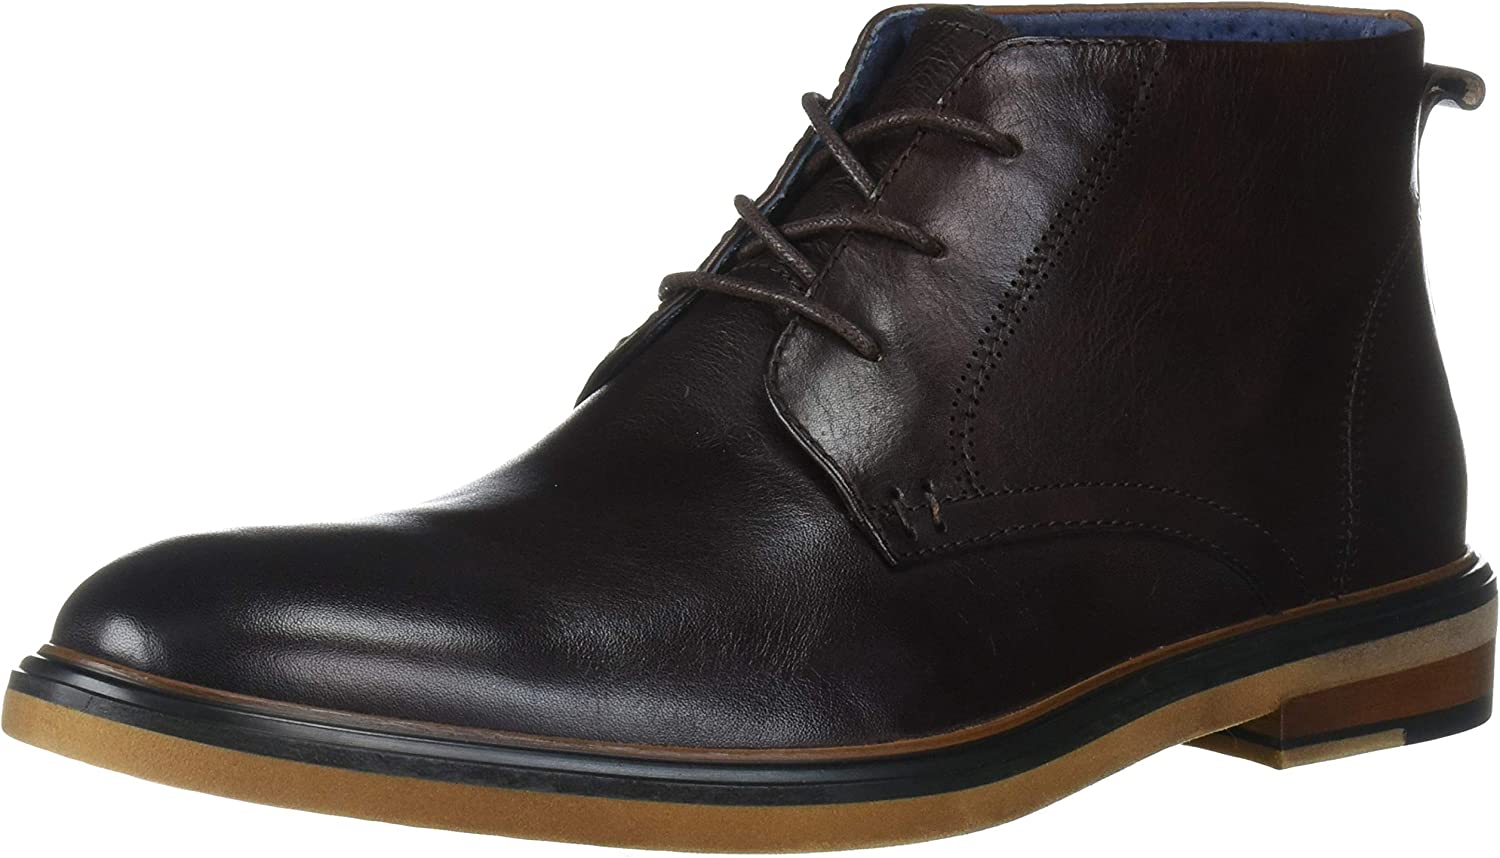 English Laundry Men's Jared Chukka Boot